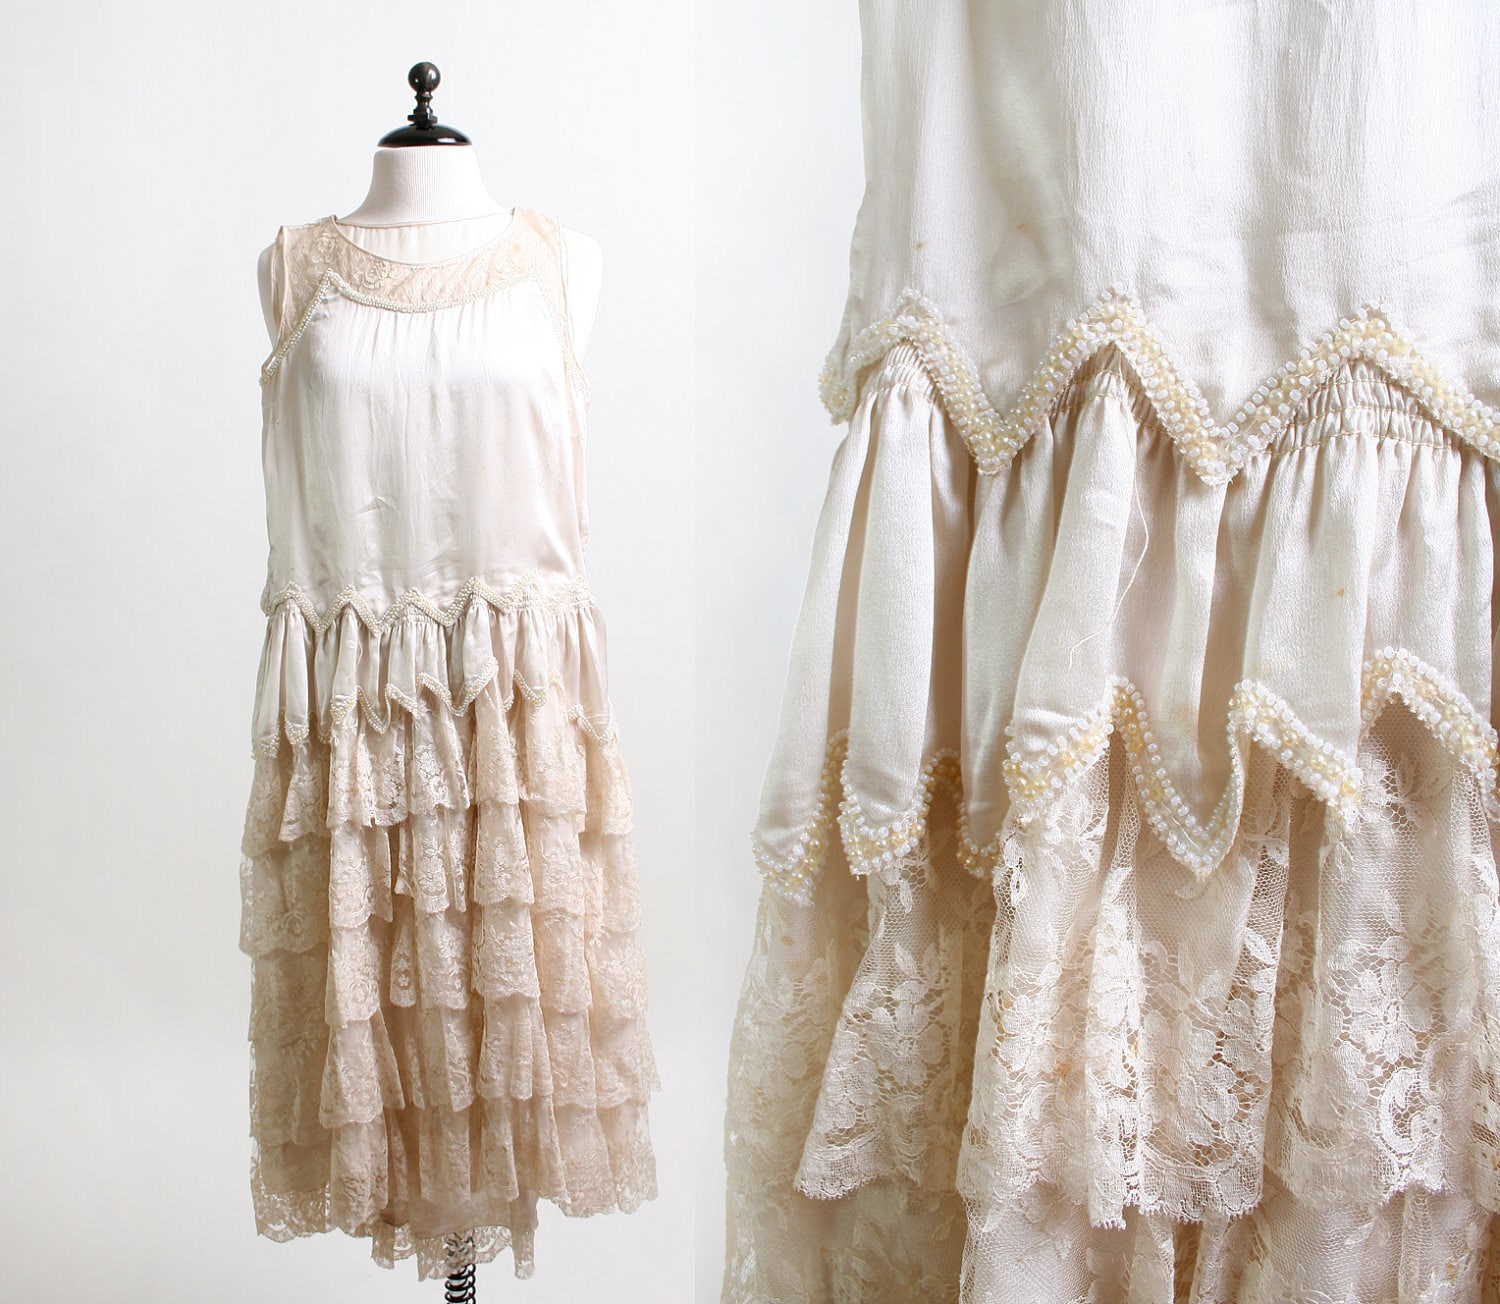 Vintage 1920s wedding dress cream lace and faux pearl by zwzzy for Vintage wedding dresses 1920